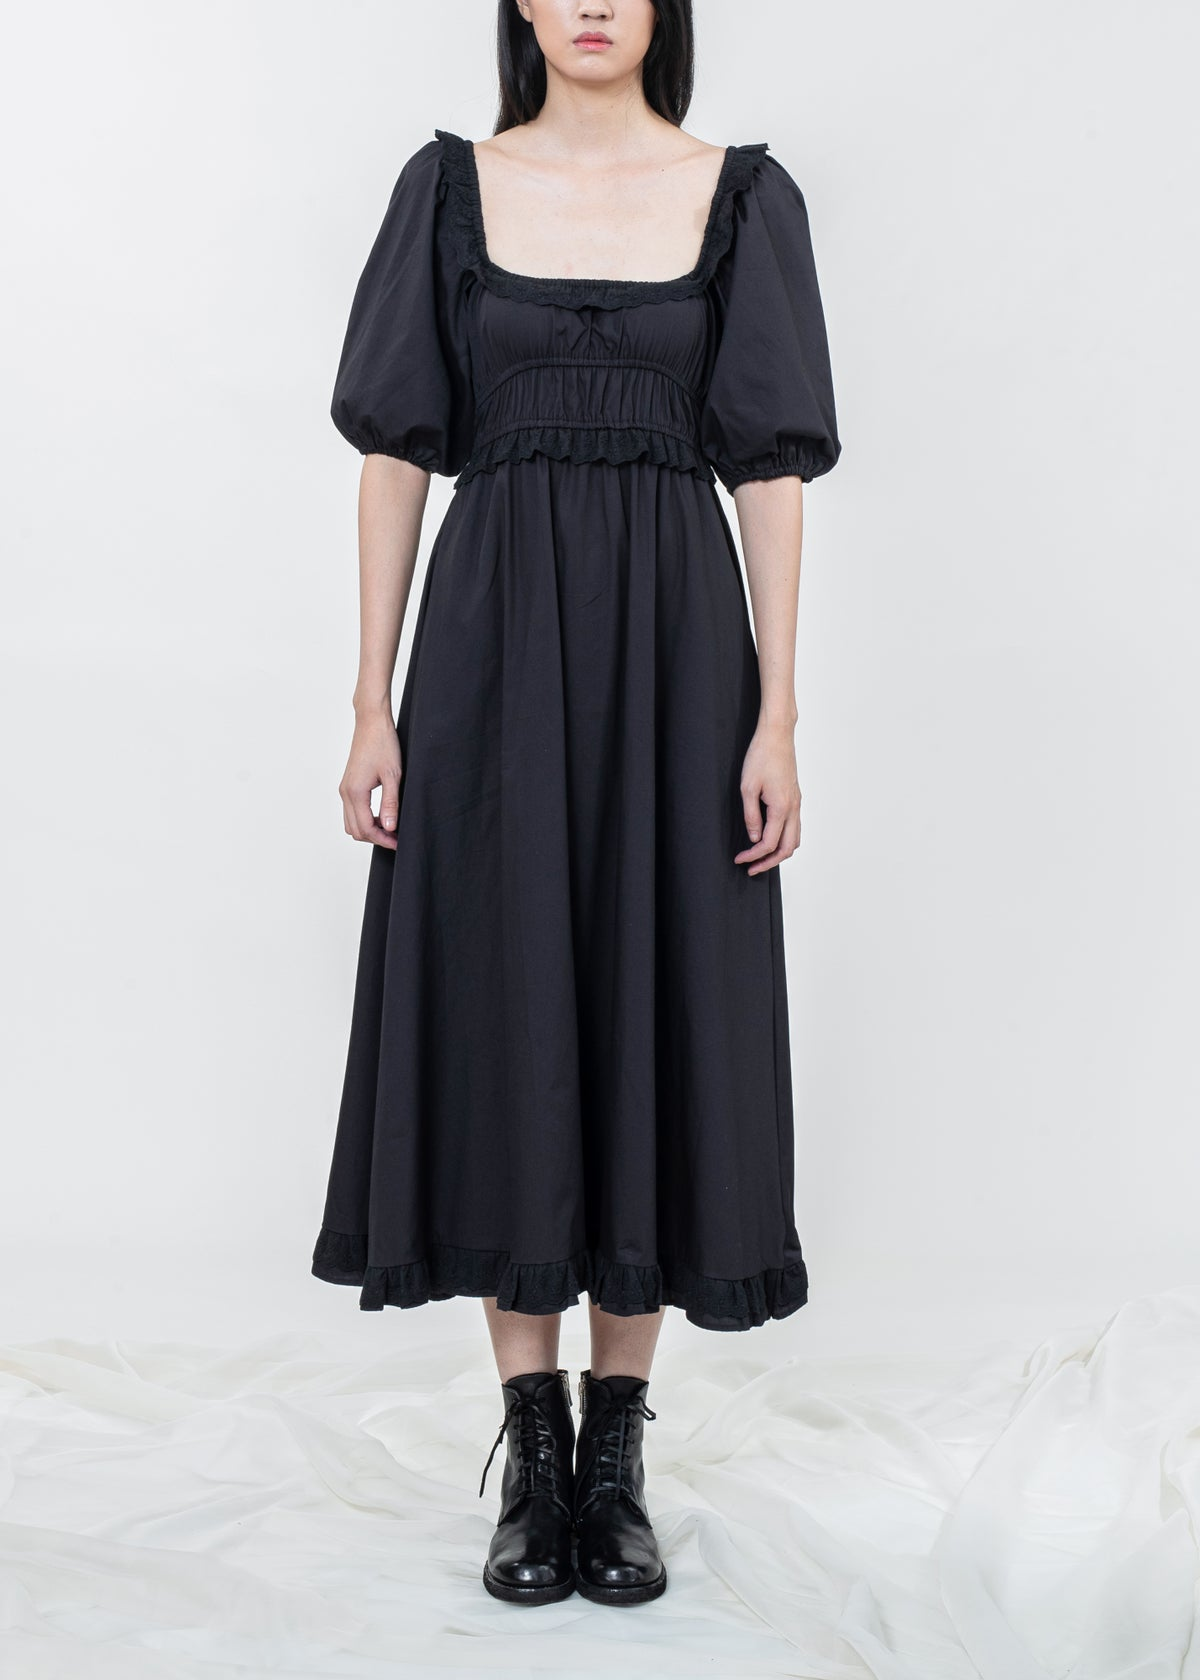 Image of Lilydale  Long Dress - Black